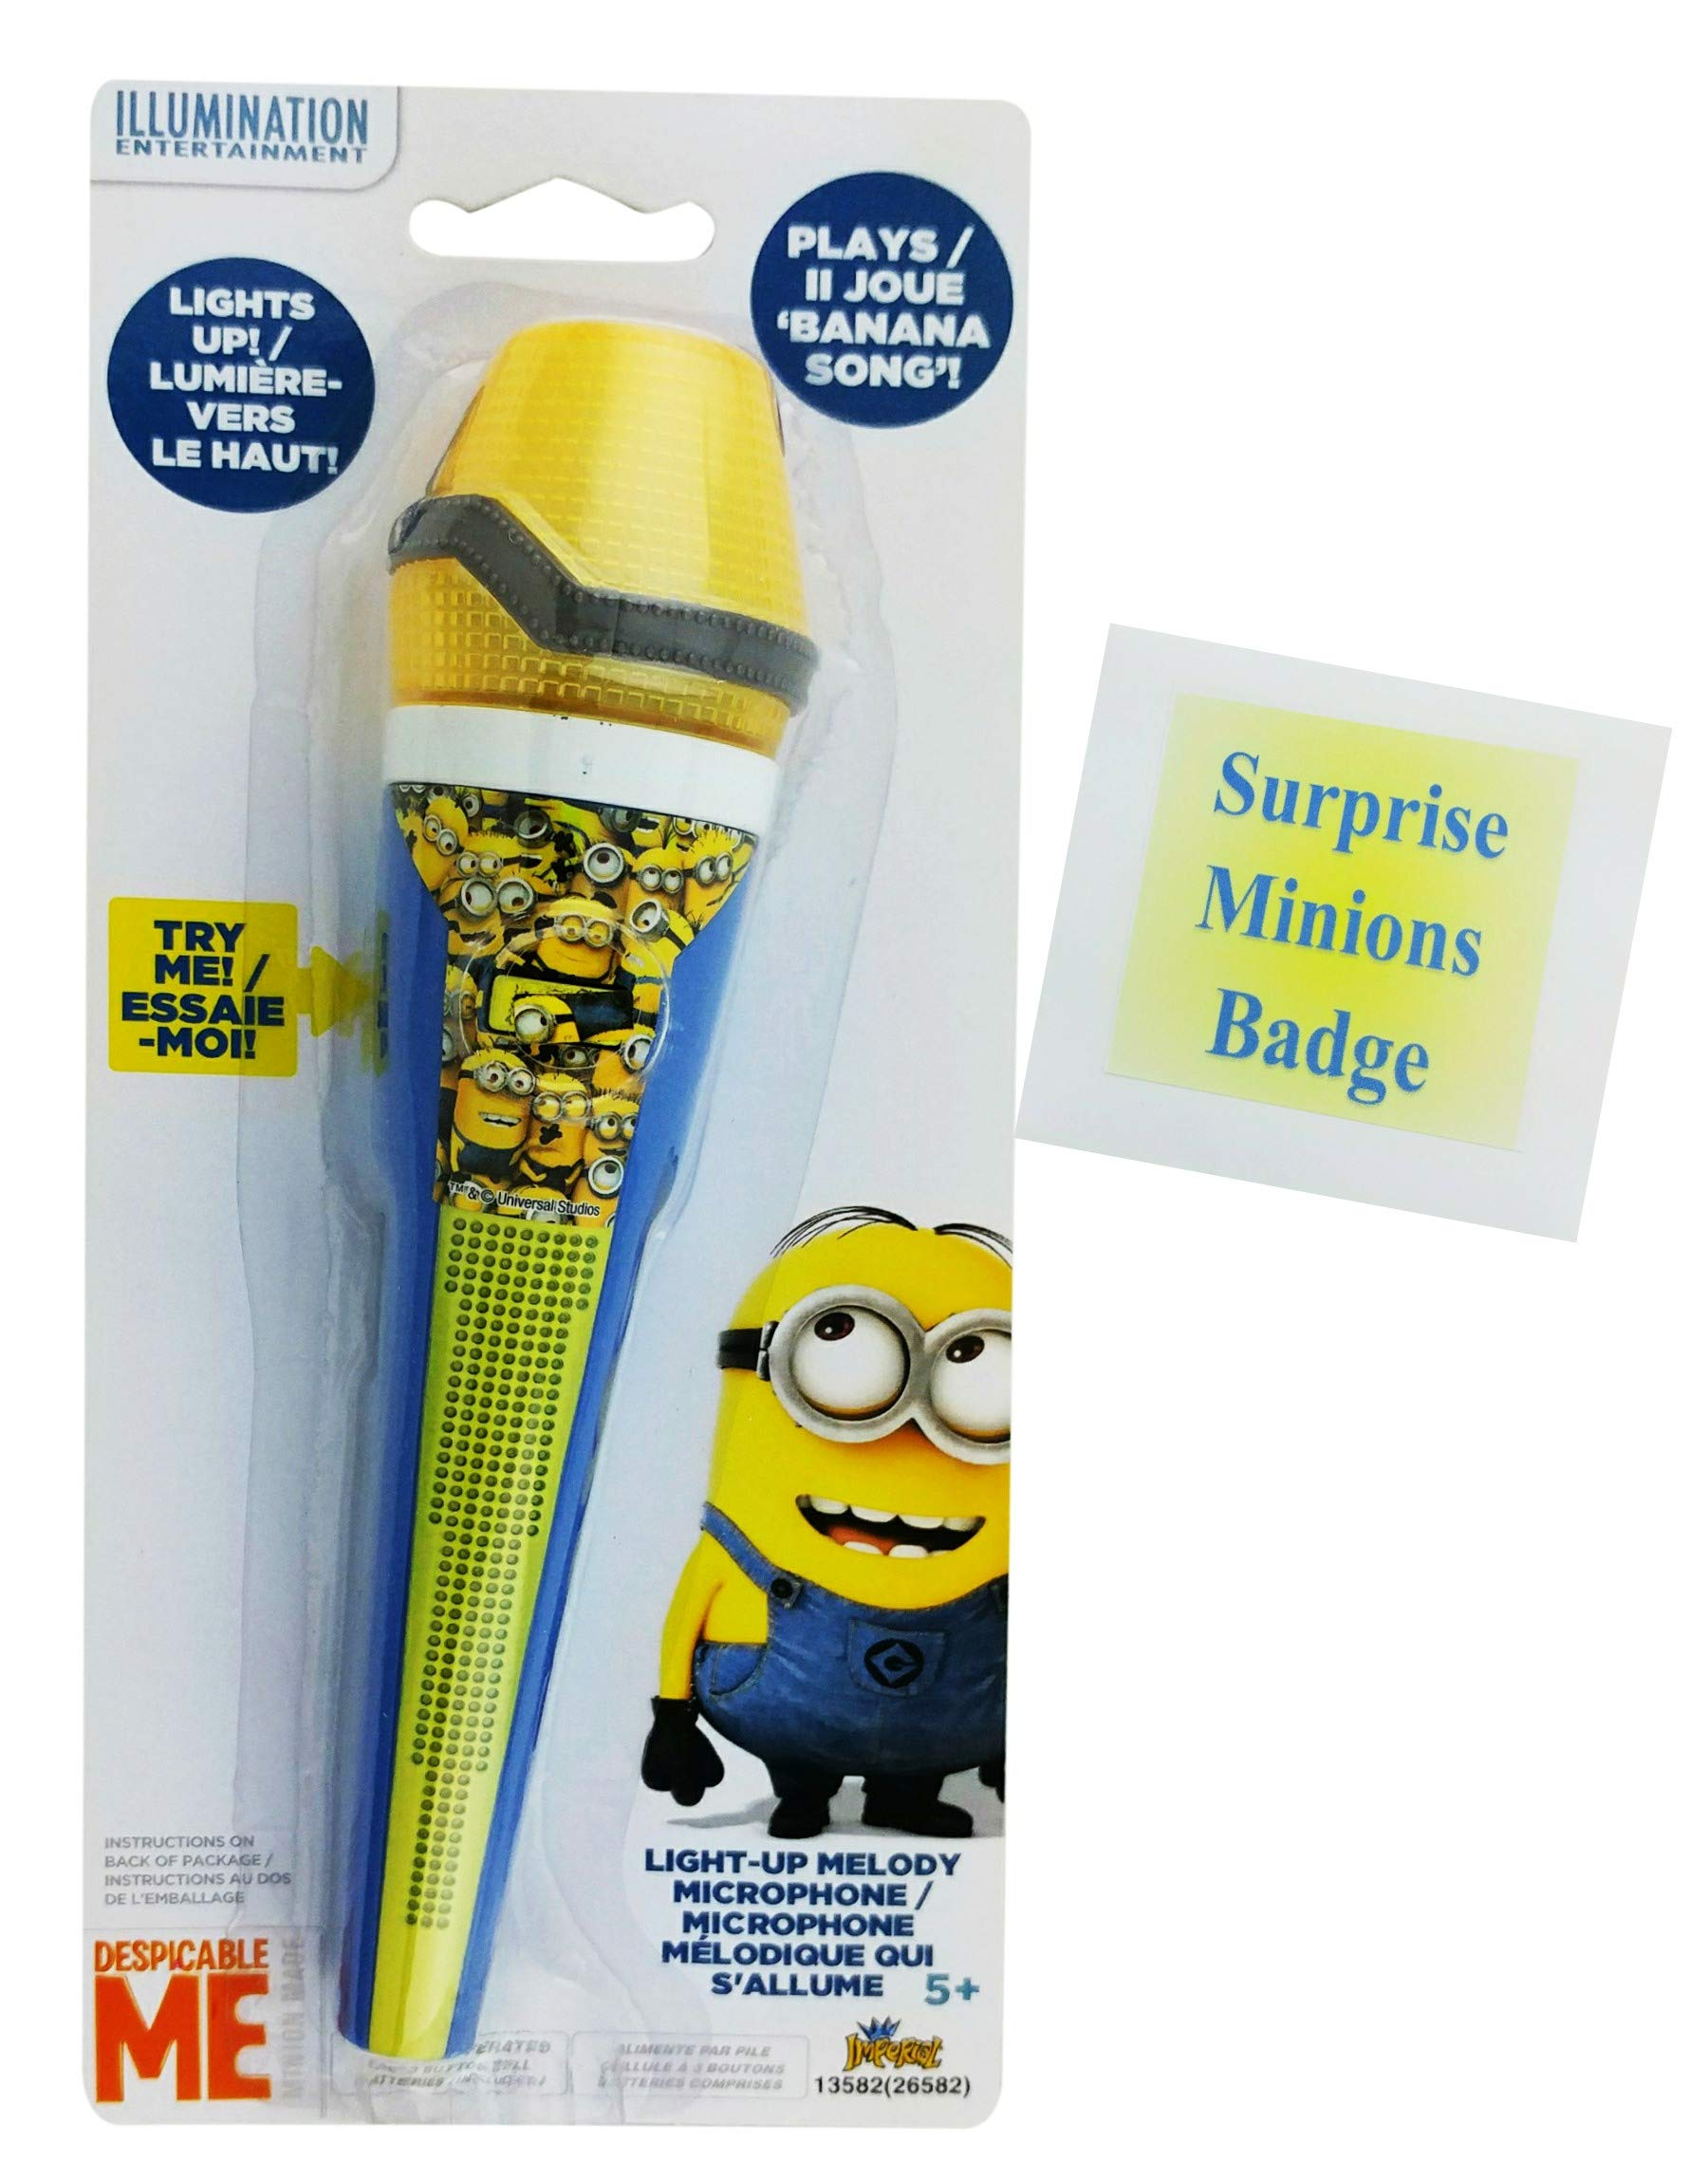 Minions toys | Despicable Me Sing-along Banana Song Melody Microphone and Minions Badge by Imperial Toys